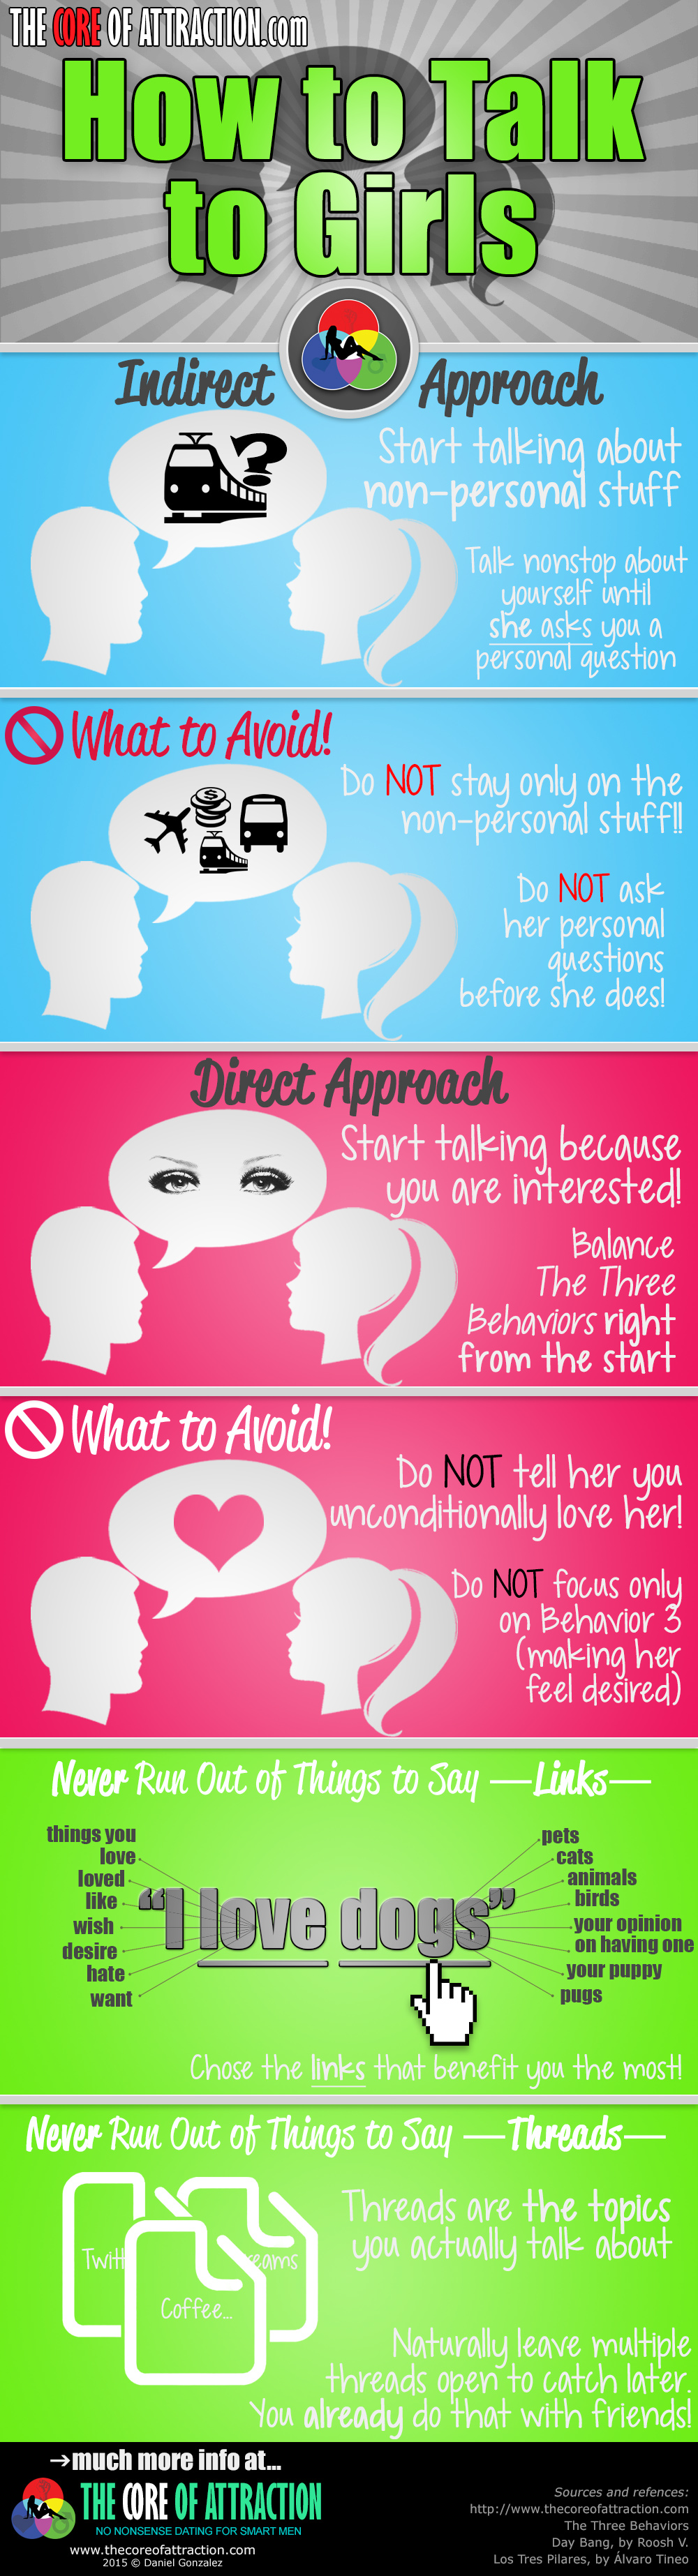 how to talk to girls infographic